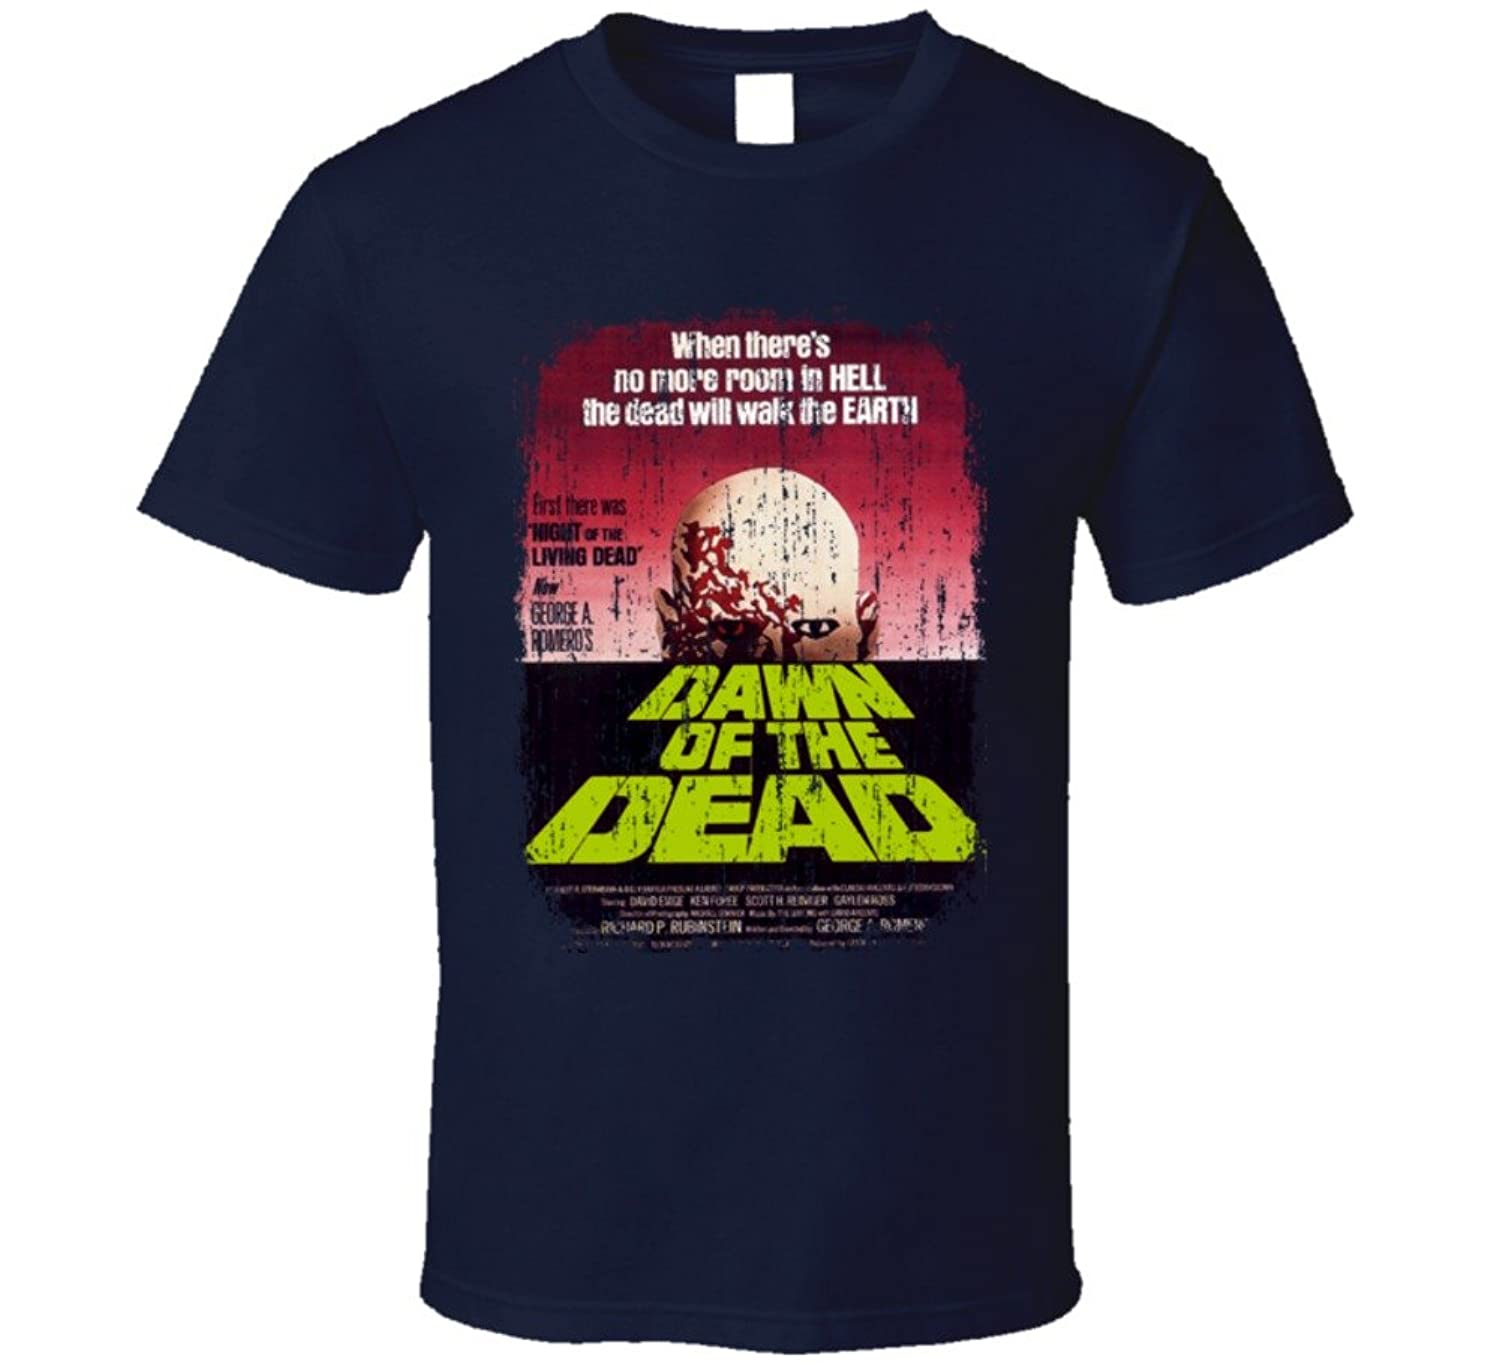 Cheap Dawn of the Dead 70's Classic Movie Vintage Poster Worn Look T Shirt for cheap